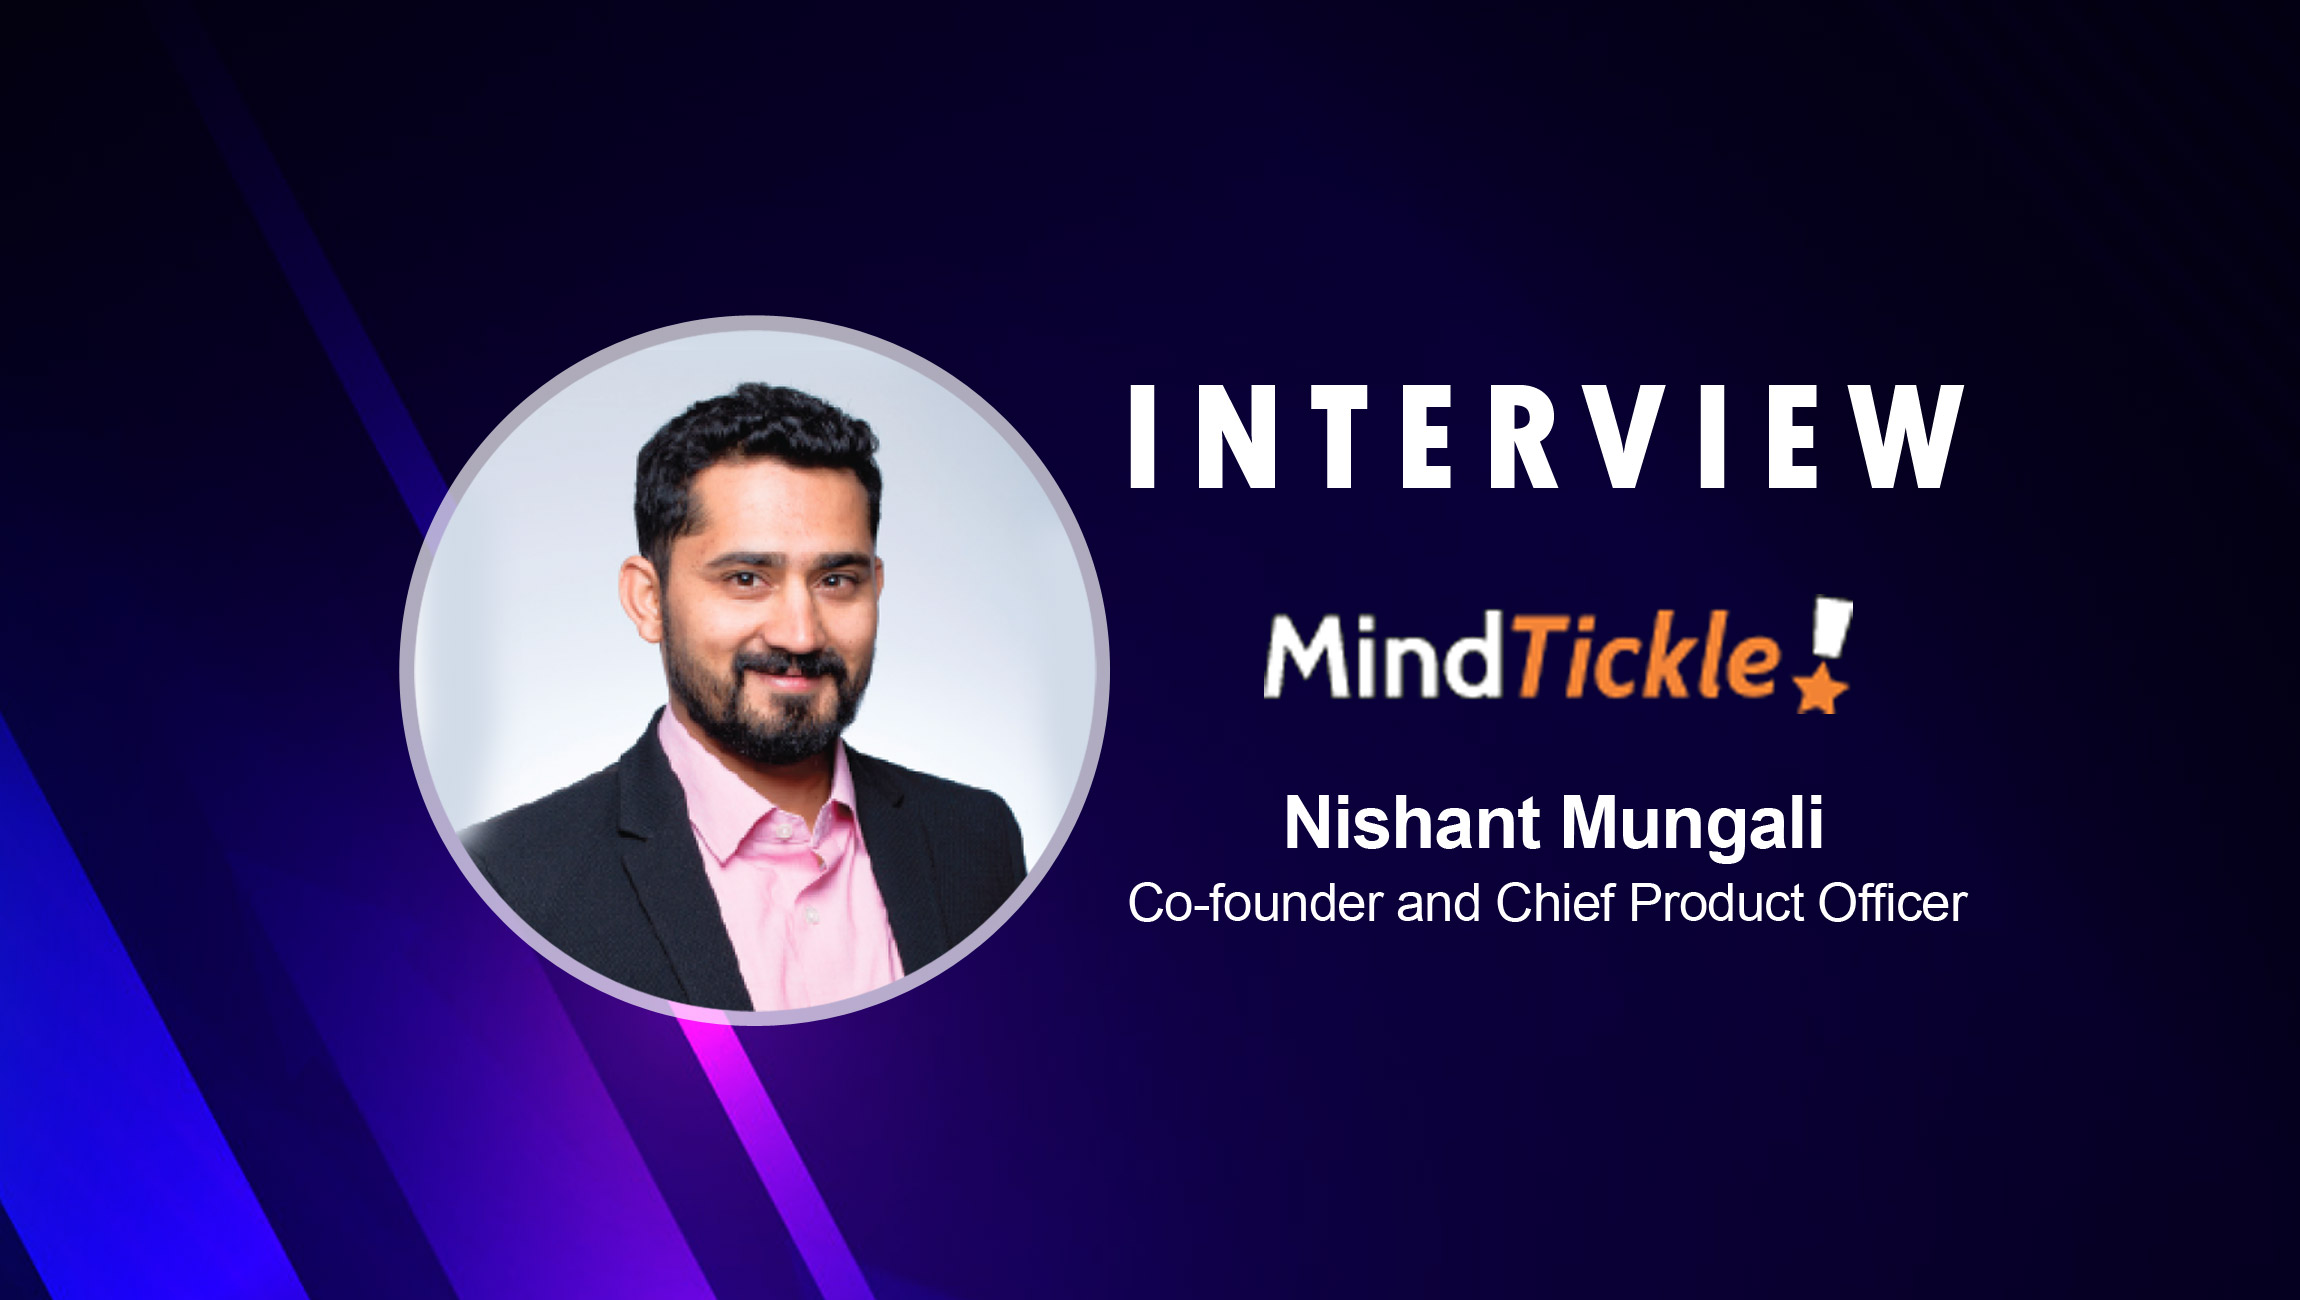 SalesTechStar Interview with Nishant Mungali, Co-founder and Chief Product Officer at MindTickle